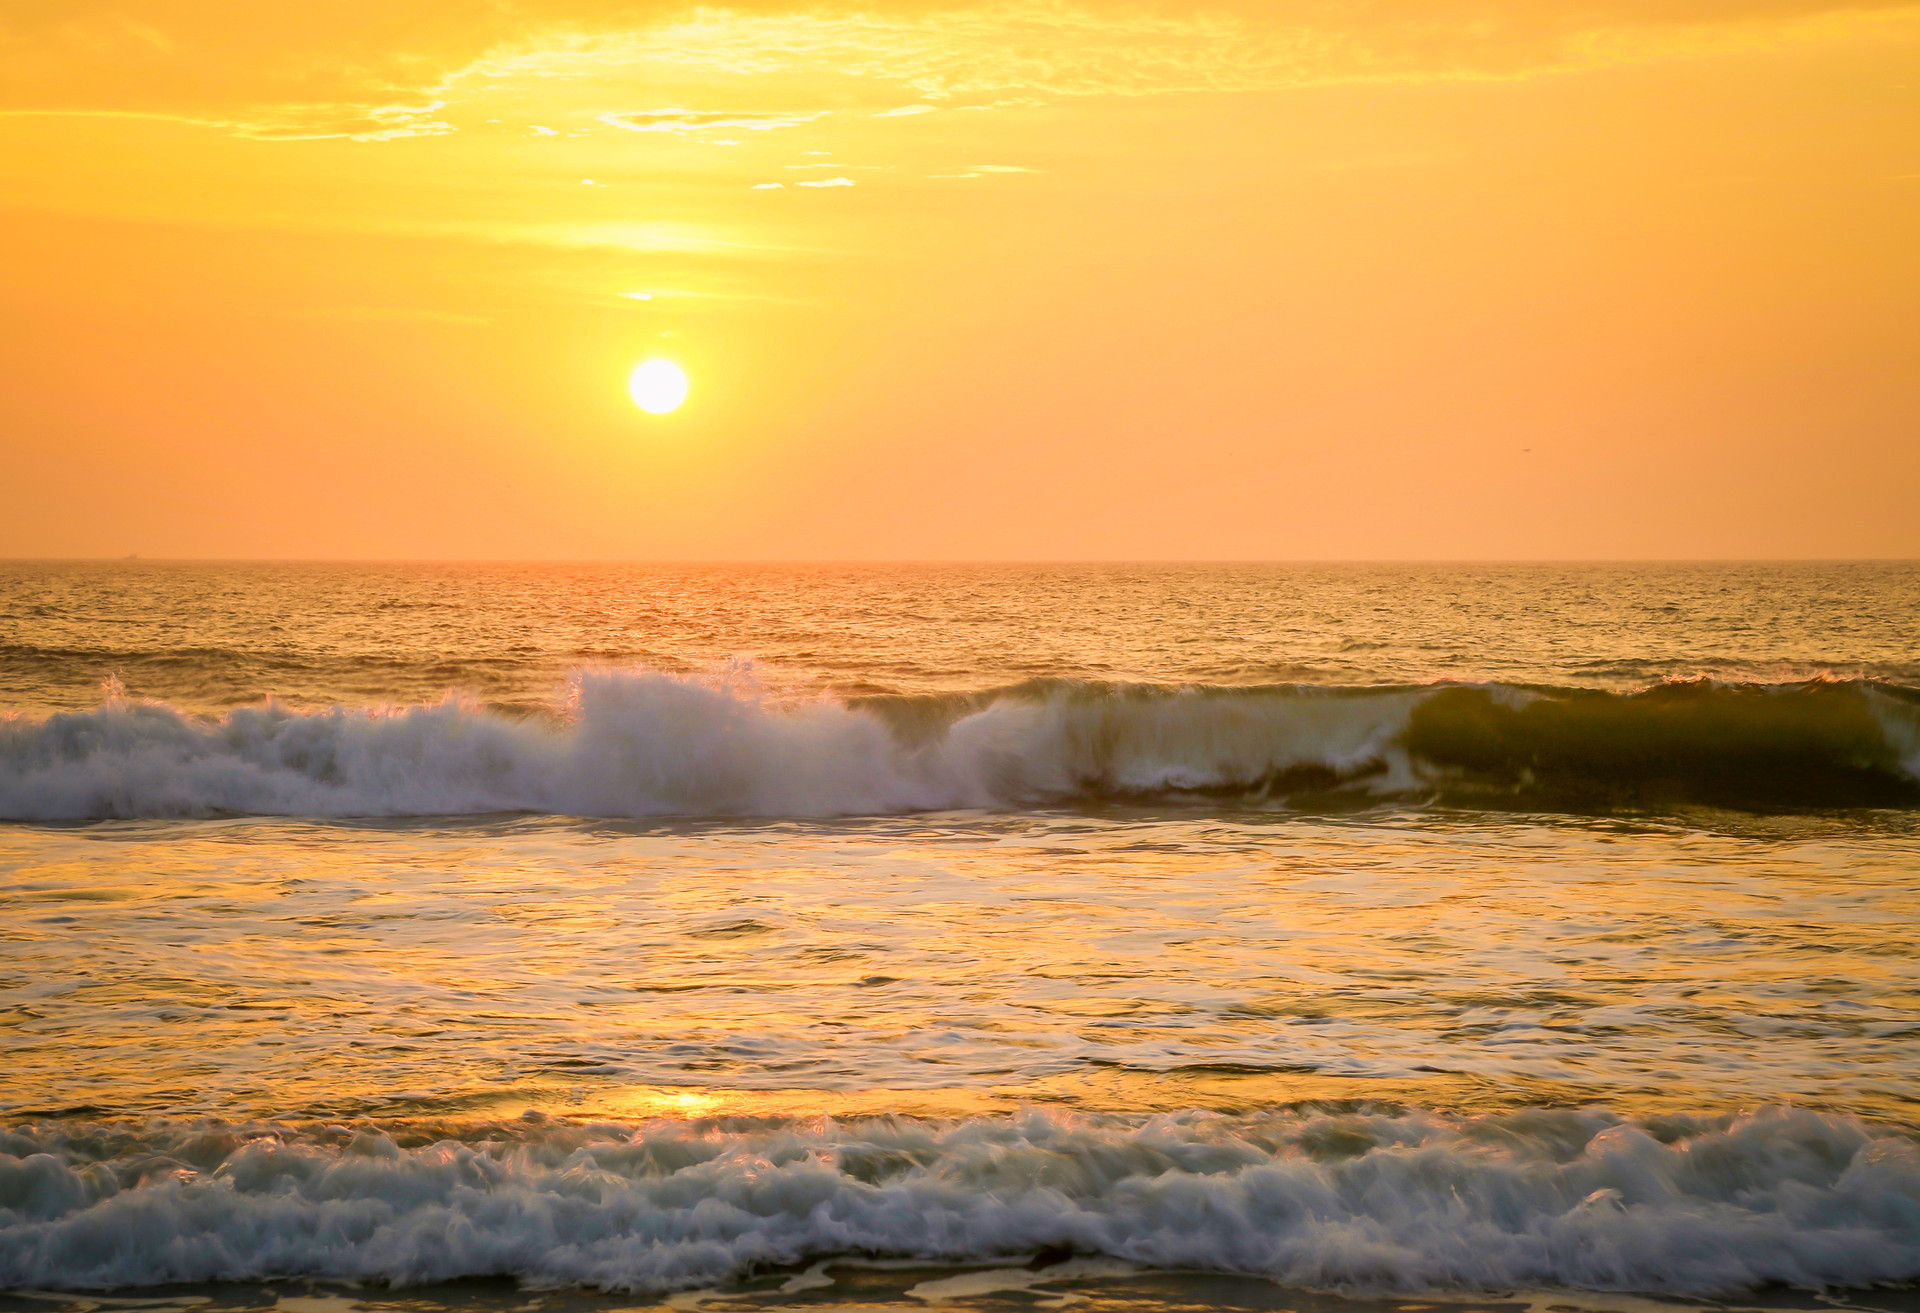 Sunset and Waves